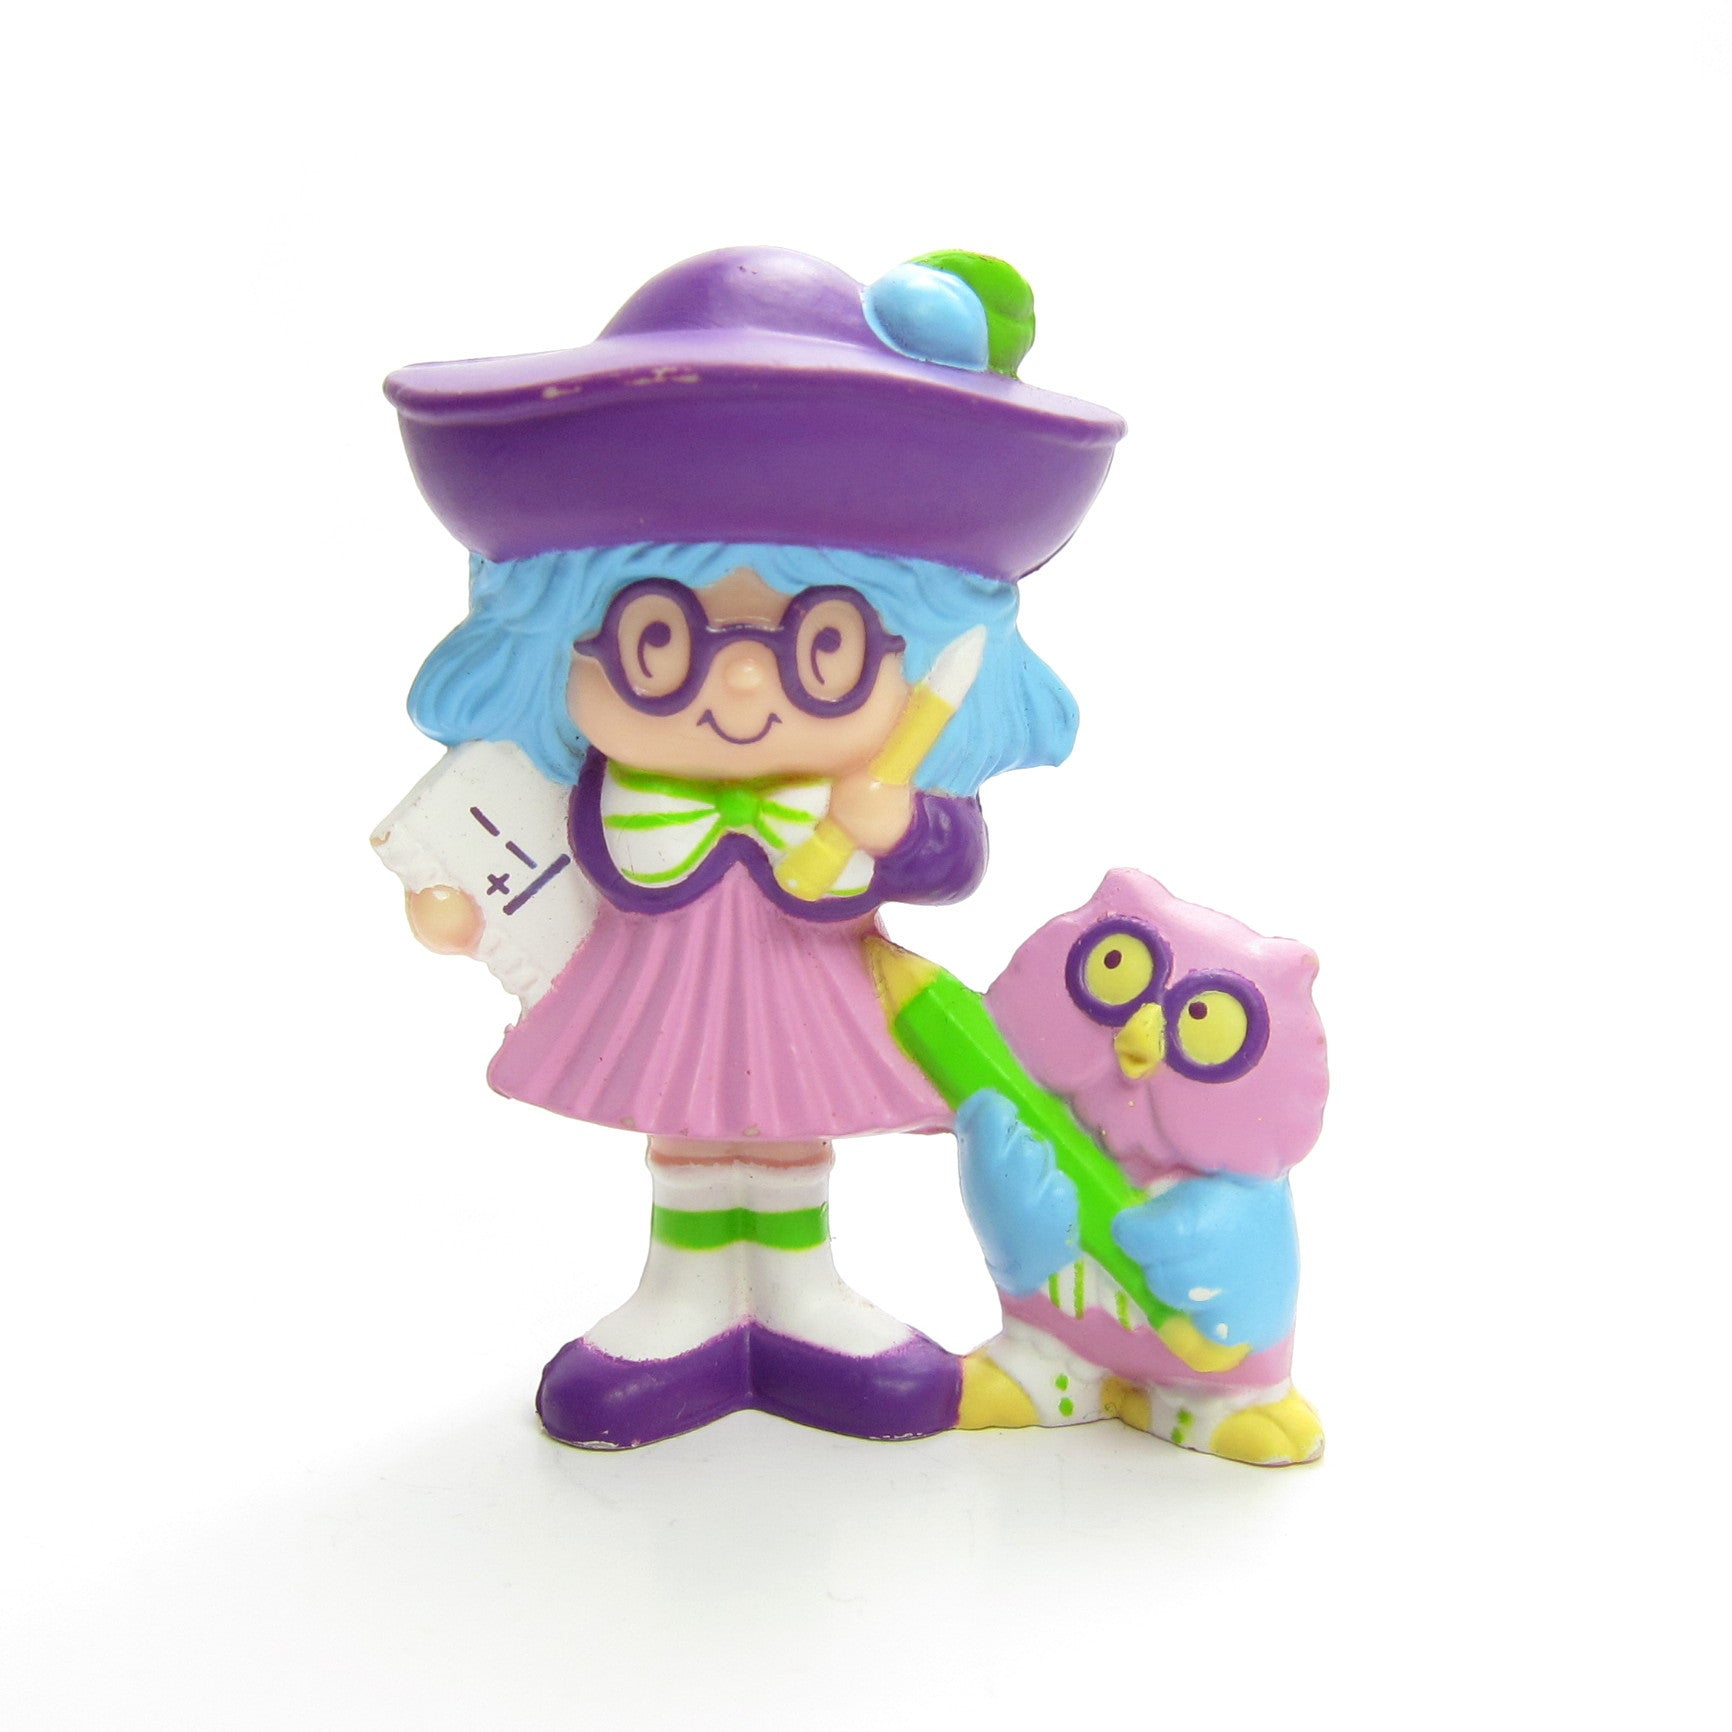 Plum Puddin at School with Elderberry Owl miniature figurine